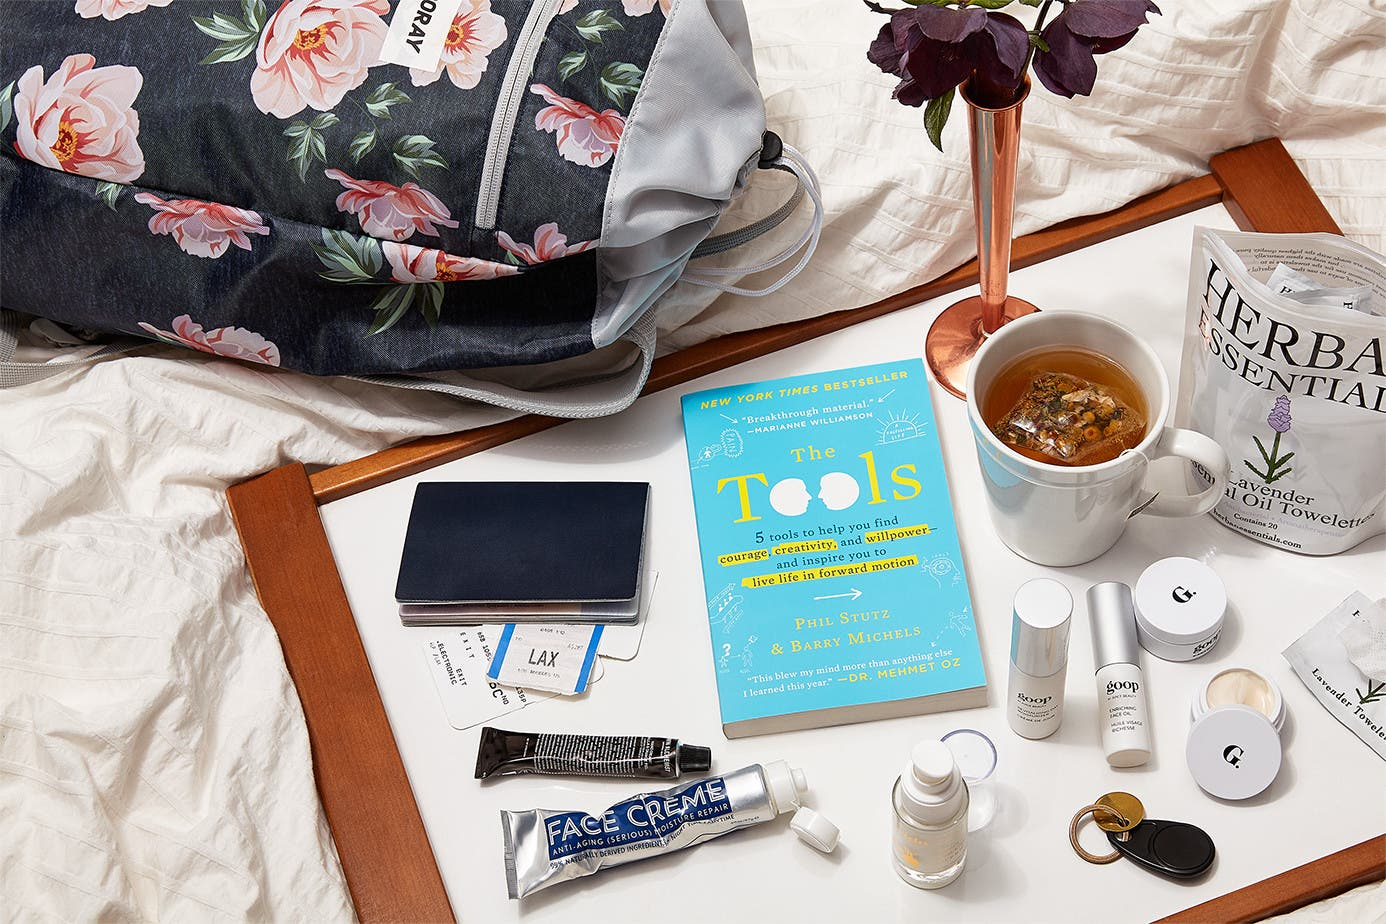 goop travel products sprawled out on a bed sheet.